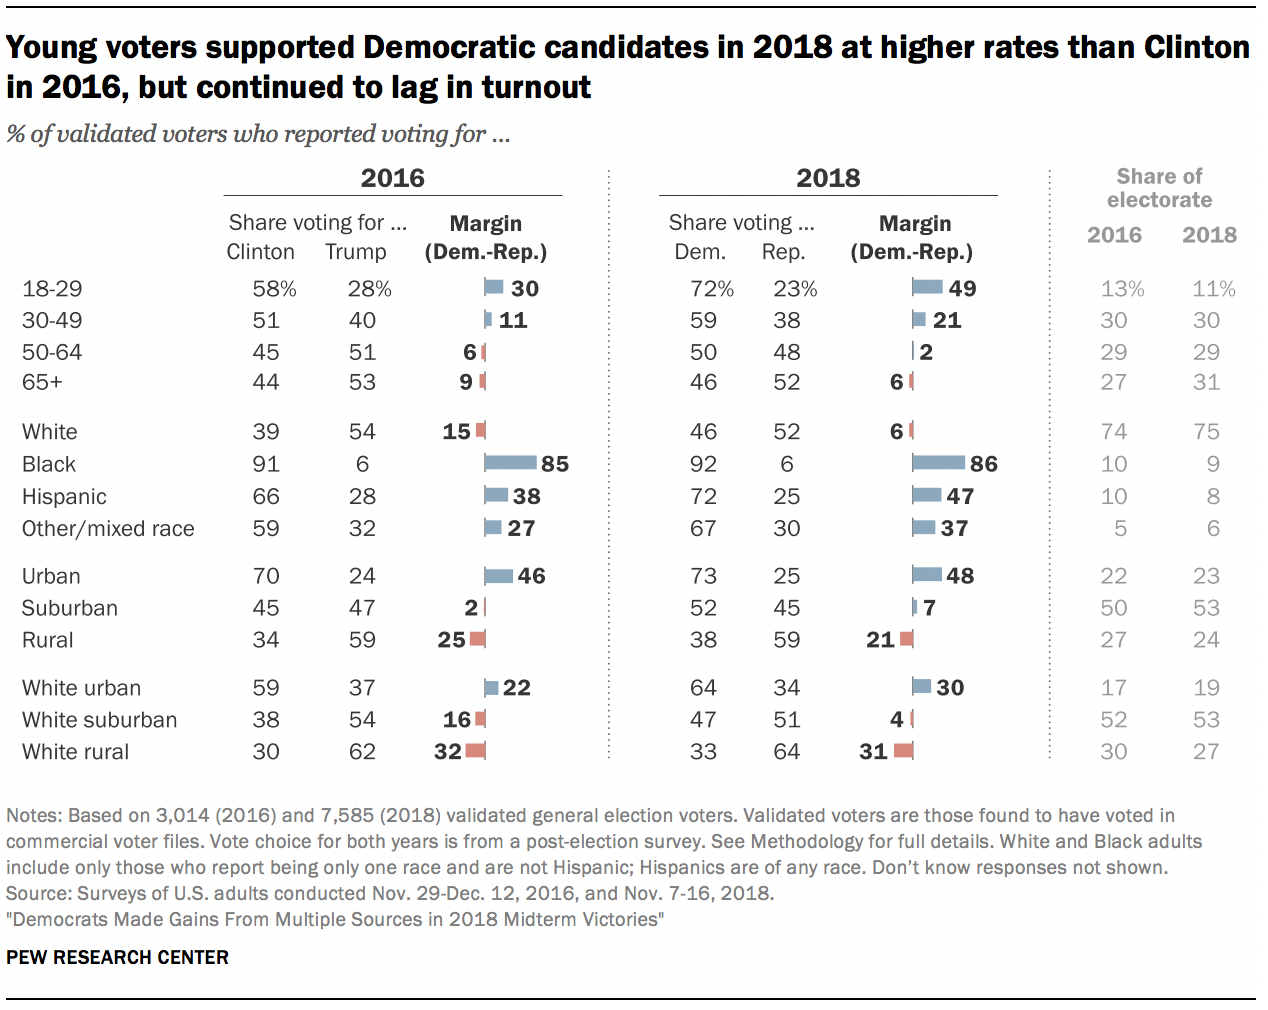 Young voters supported Democratic candidates in 2018 at higher rates than Clinton in 2016, but continued to lag in turnout